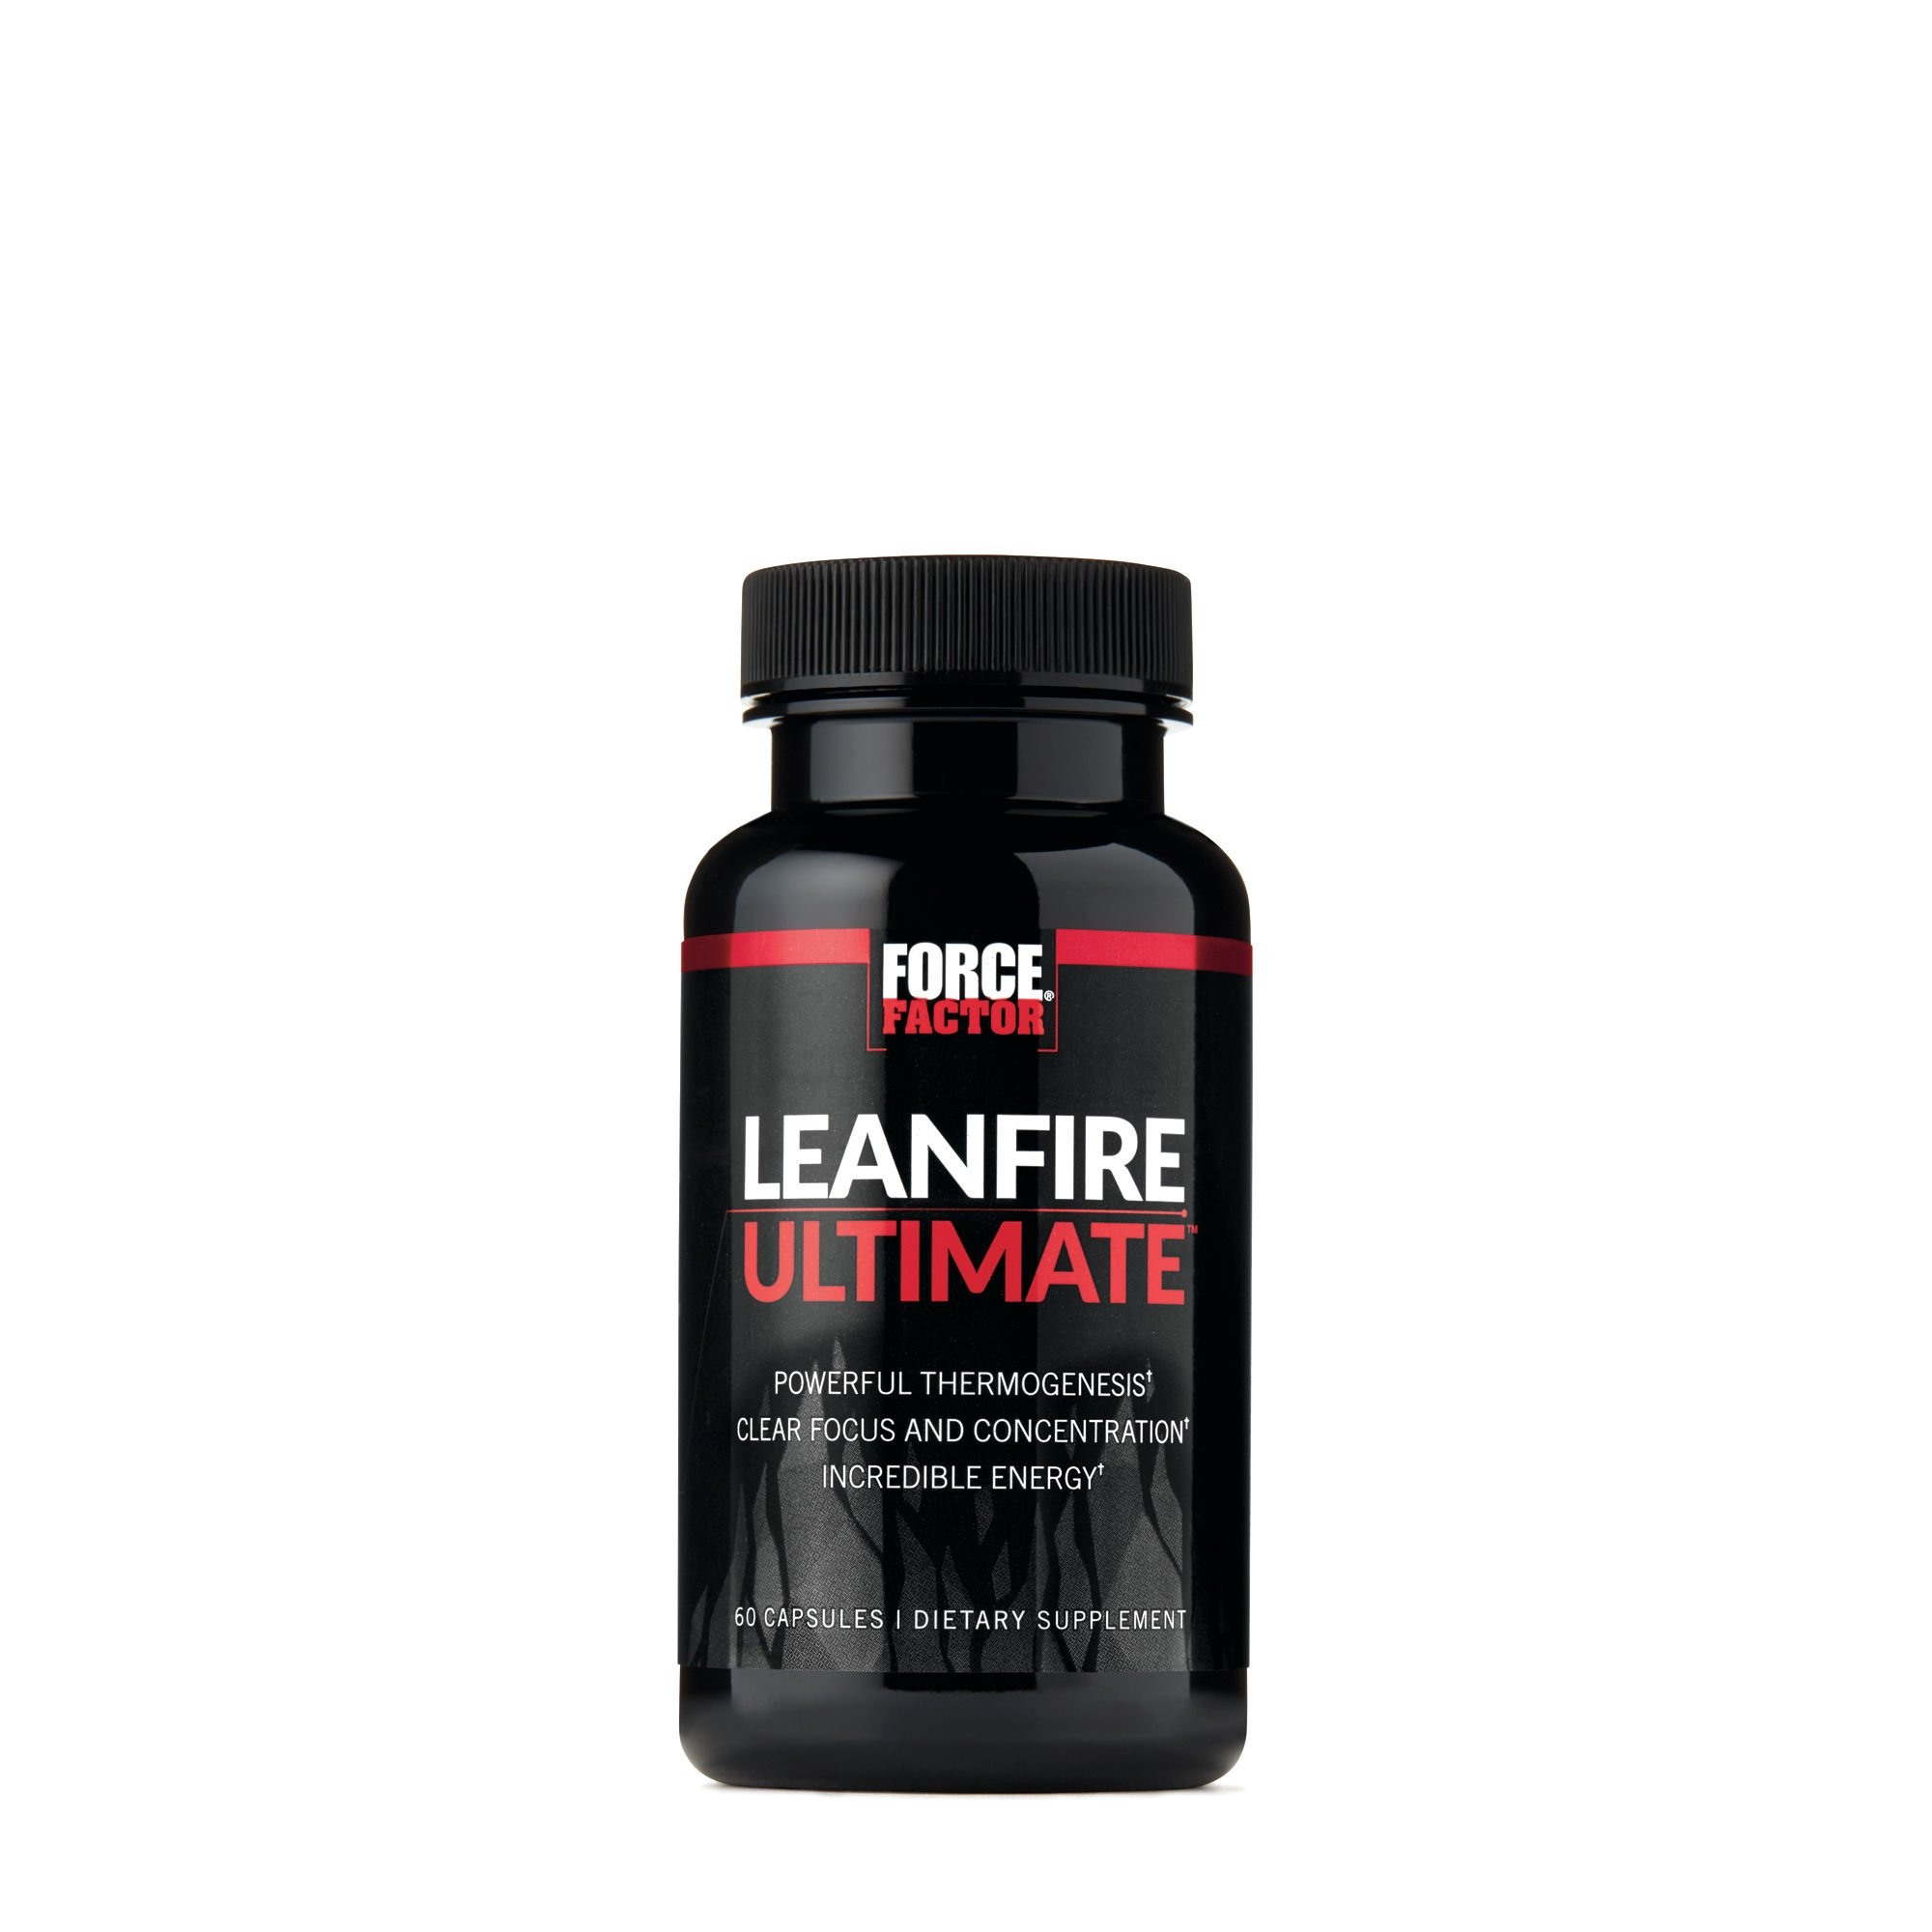 Force Factor LeanFire Ultimate Premium Thermogenic Fat Burner with Added Energy, Focus, Concentration, & Appetite Control for Weight Loss, 60 Count